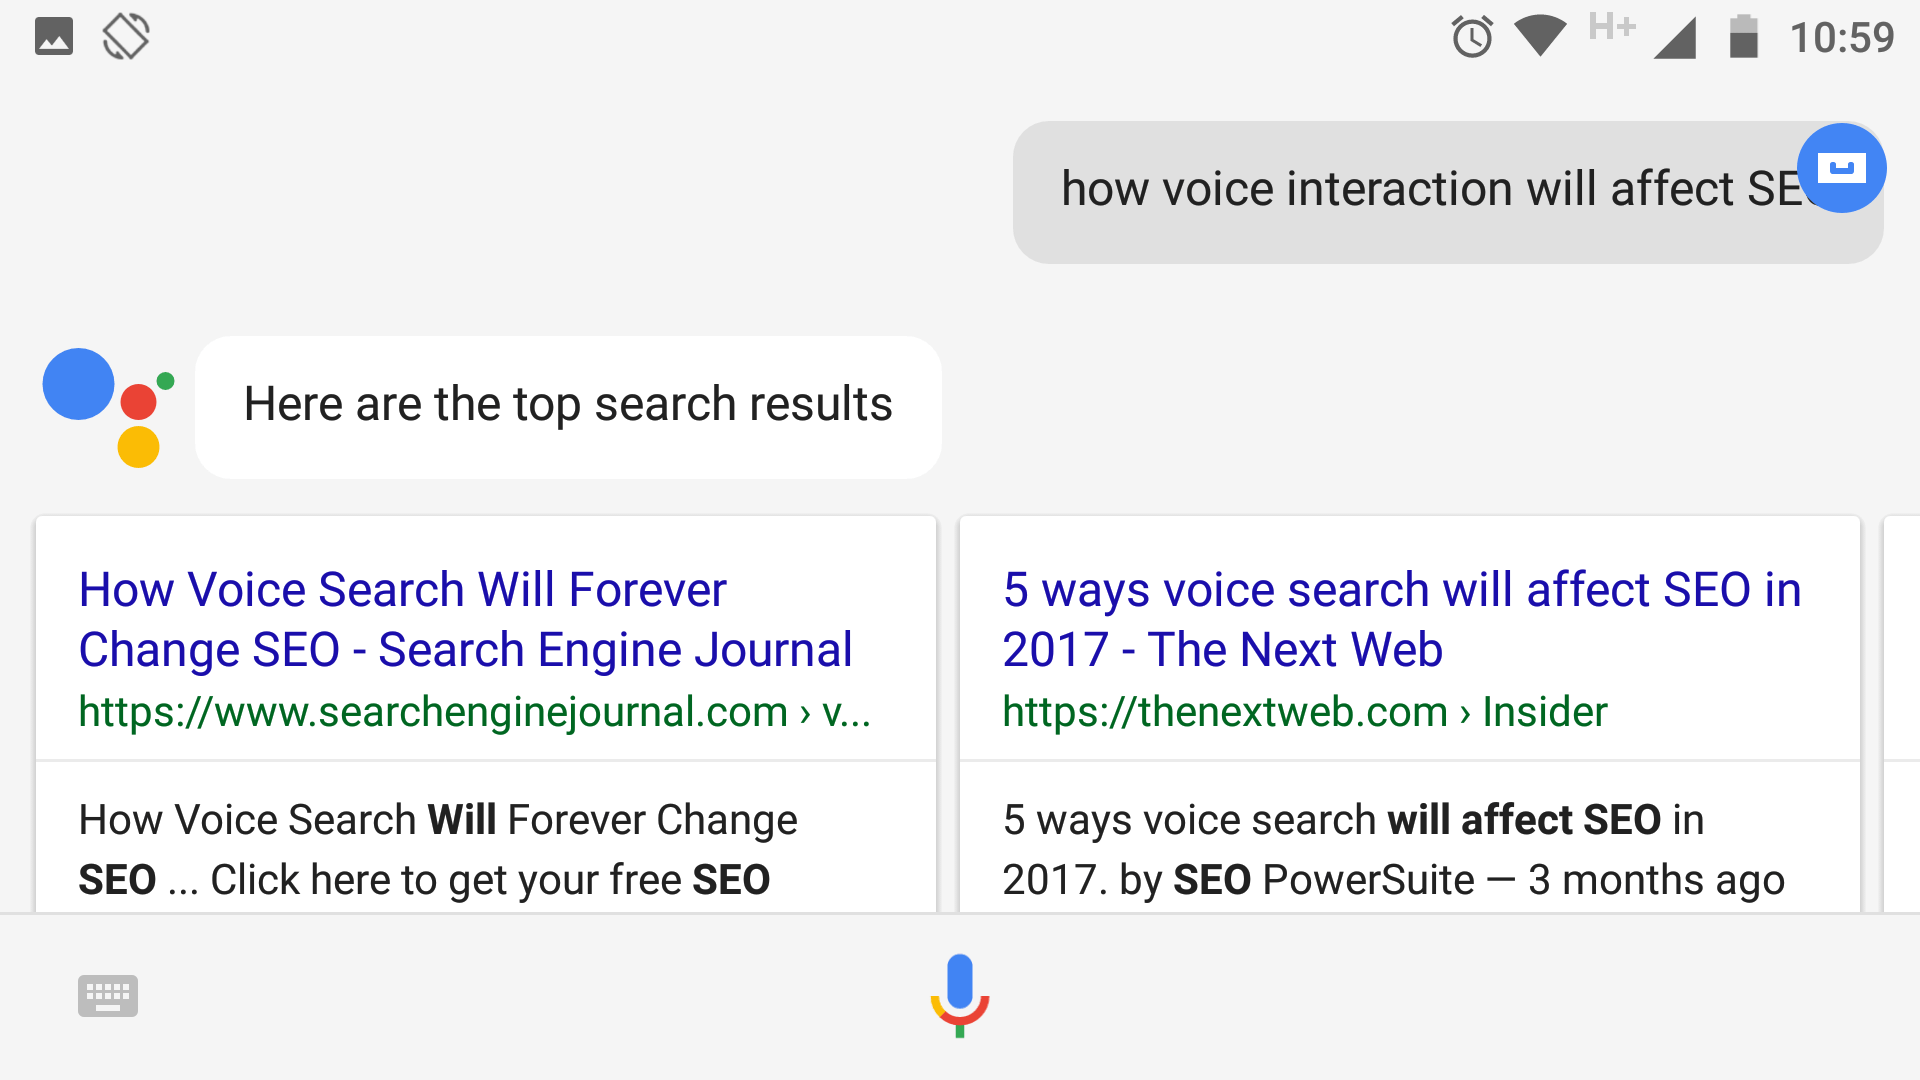 How voice interaction will affect SEO.